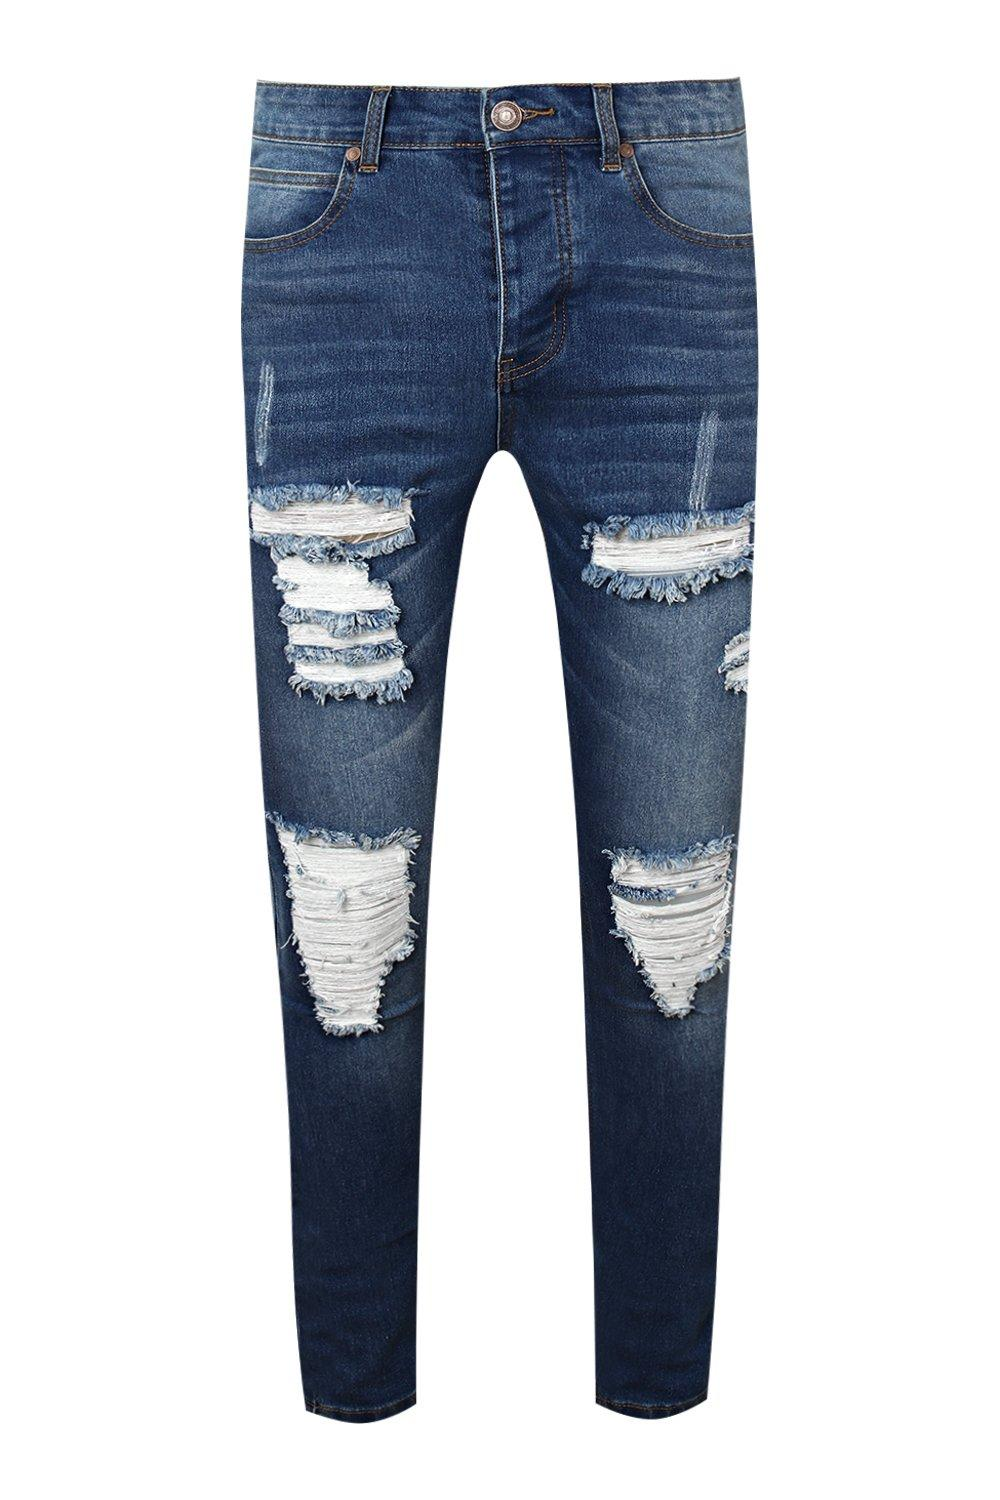 blue mid Jeans Rips Super All With Skinny Over B0yBqZgU